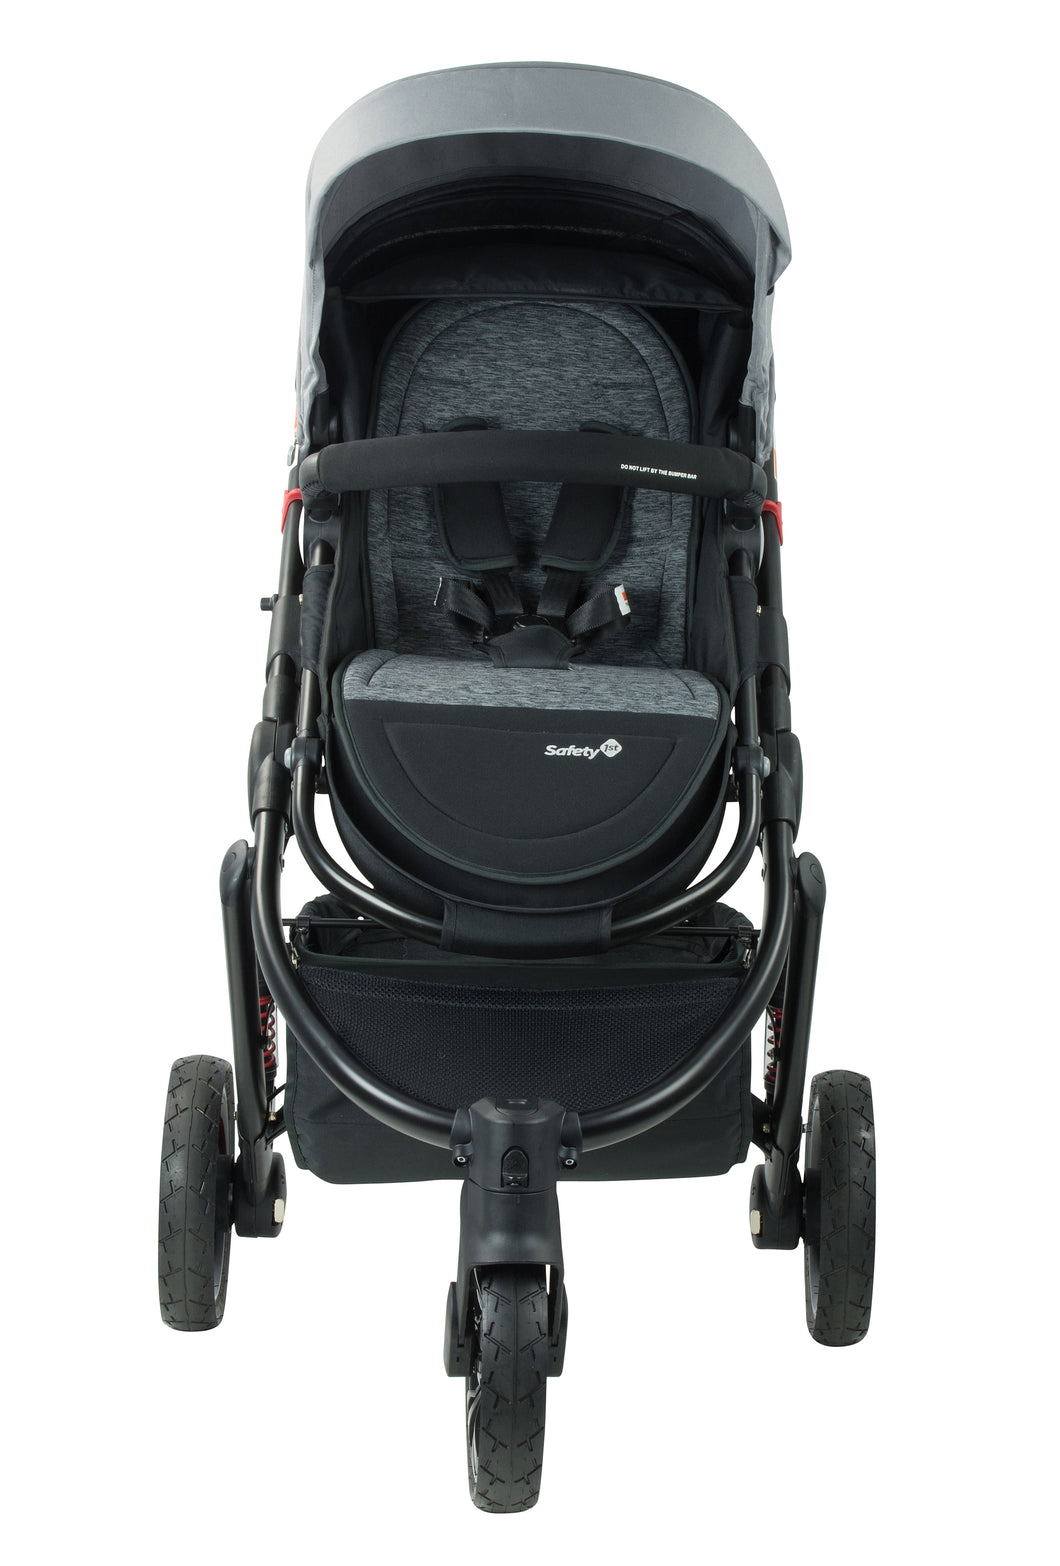 Safety Wanderer Pram Stroller 3 Wheels